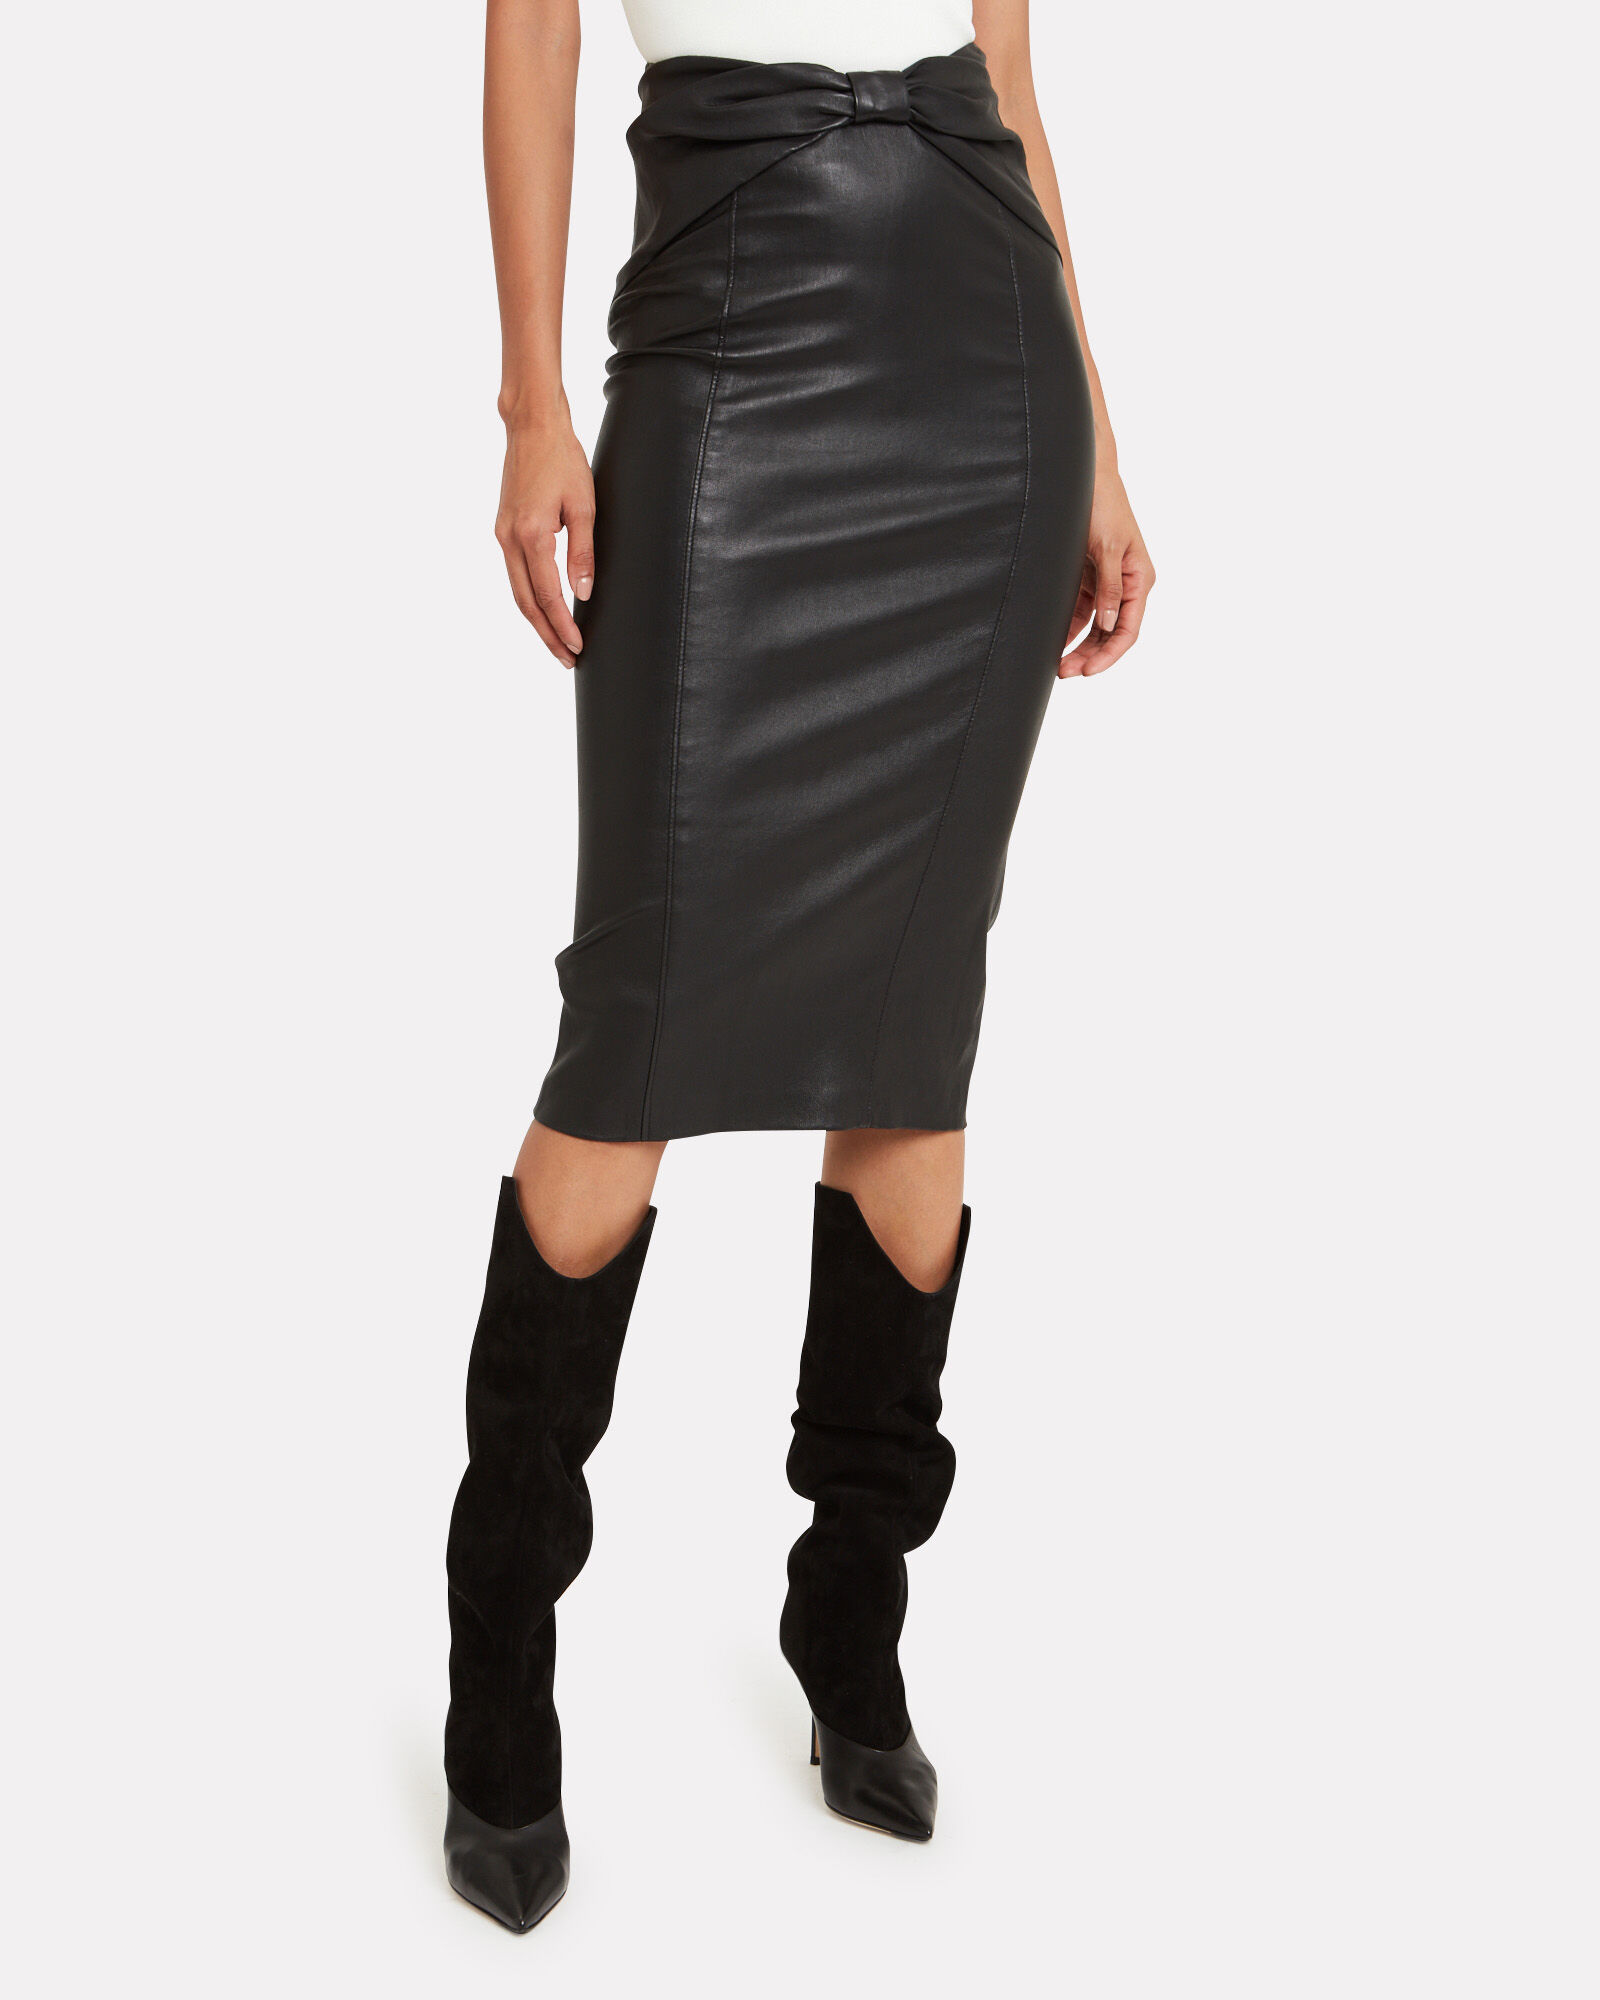 Carlyn Bow Waist Leather Skirt, BLACK, hi-res